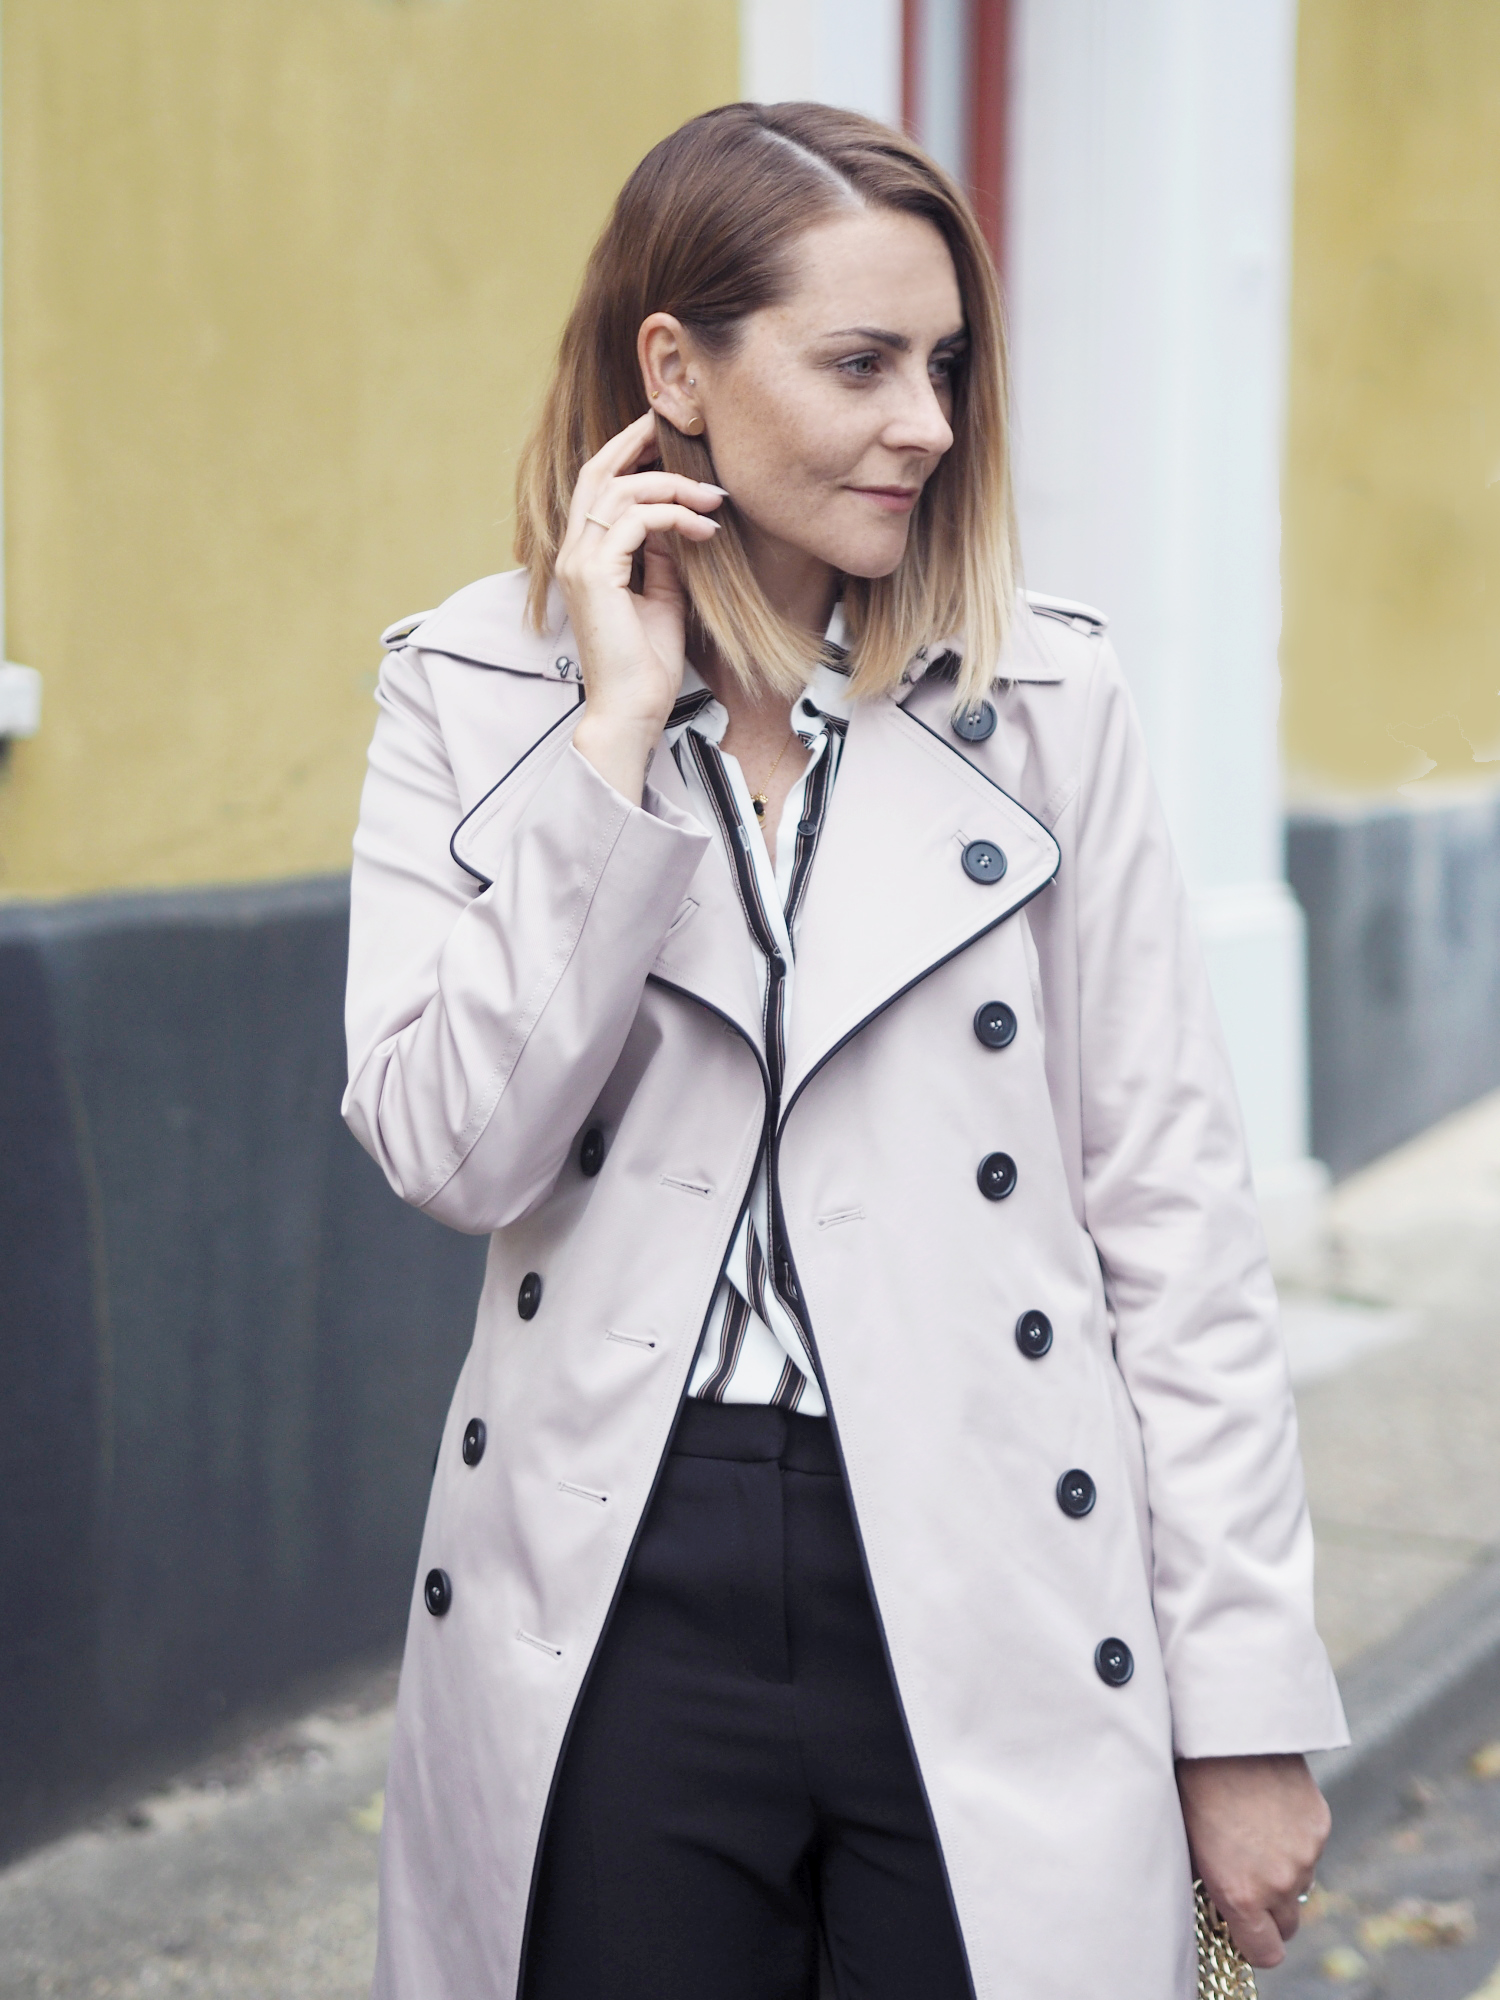 Jacques vert mac outfit smart look